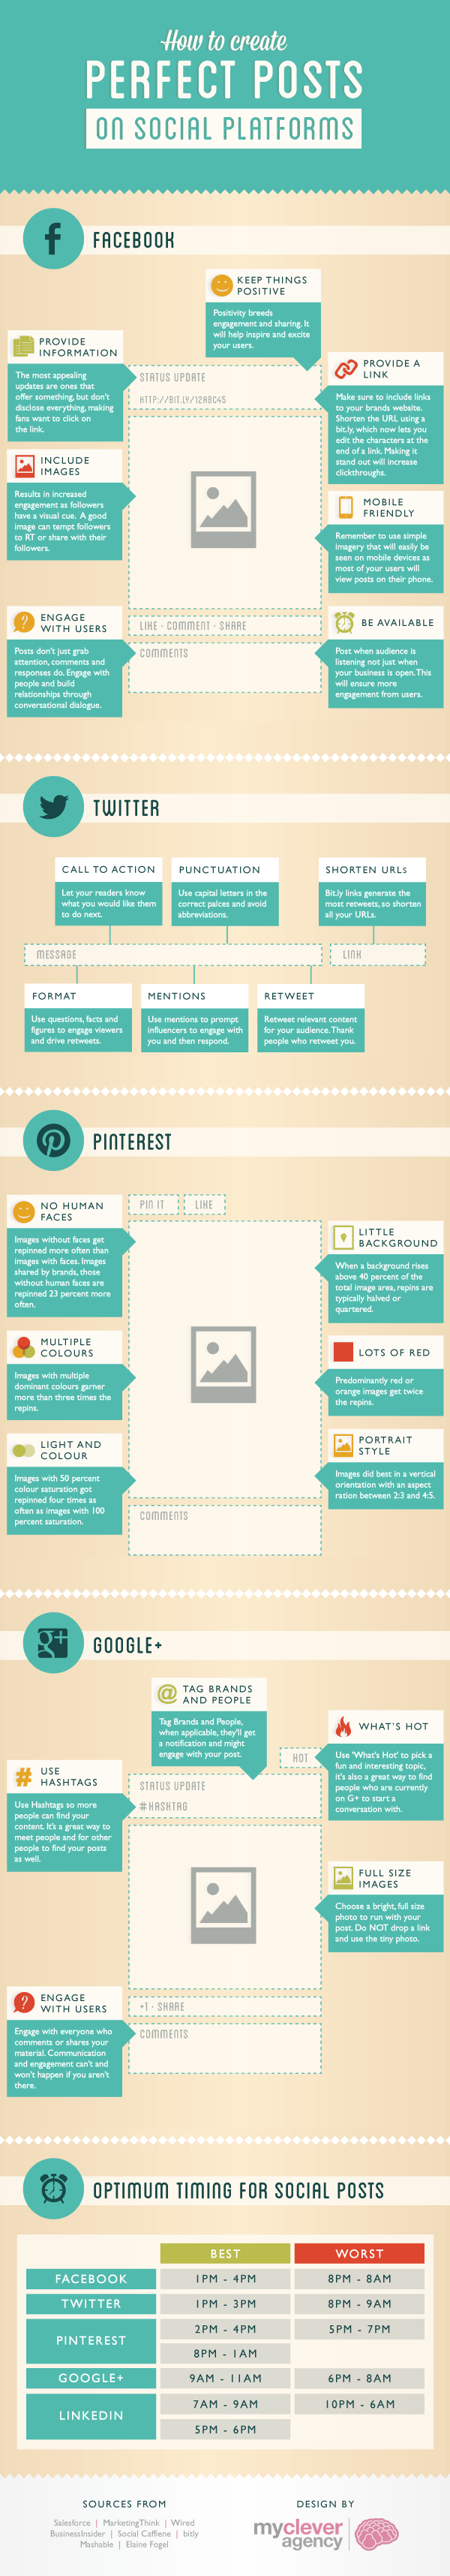 How To Create The Perfect Pinterest, Google+, Facebook & Twitter Posts [Infographic]